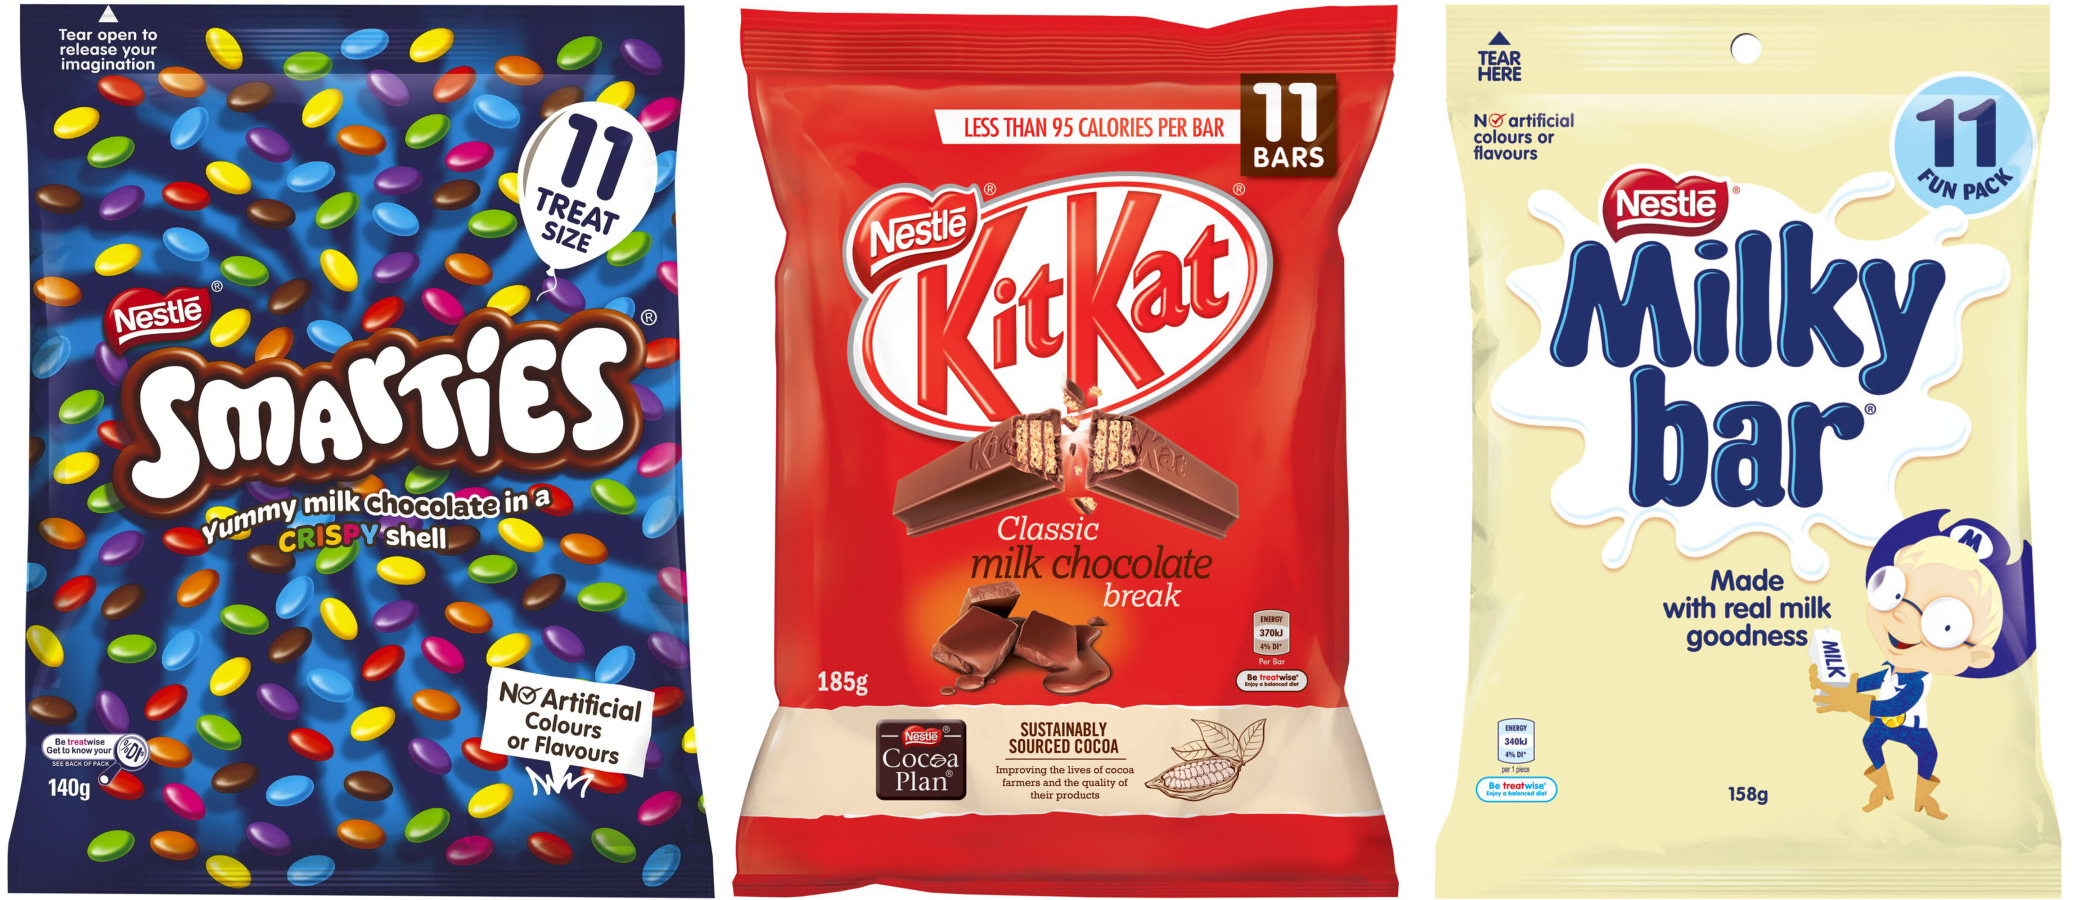 Nestle 'fun packs' of smarties, kit kats and milky bars